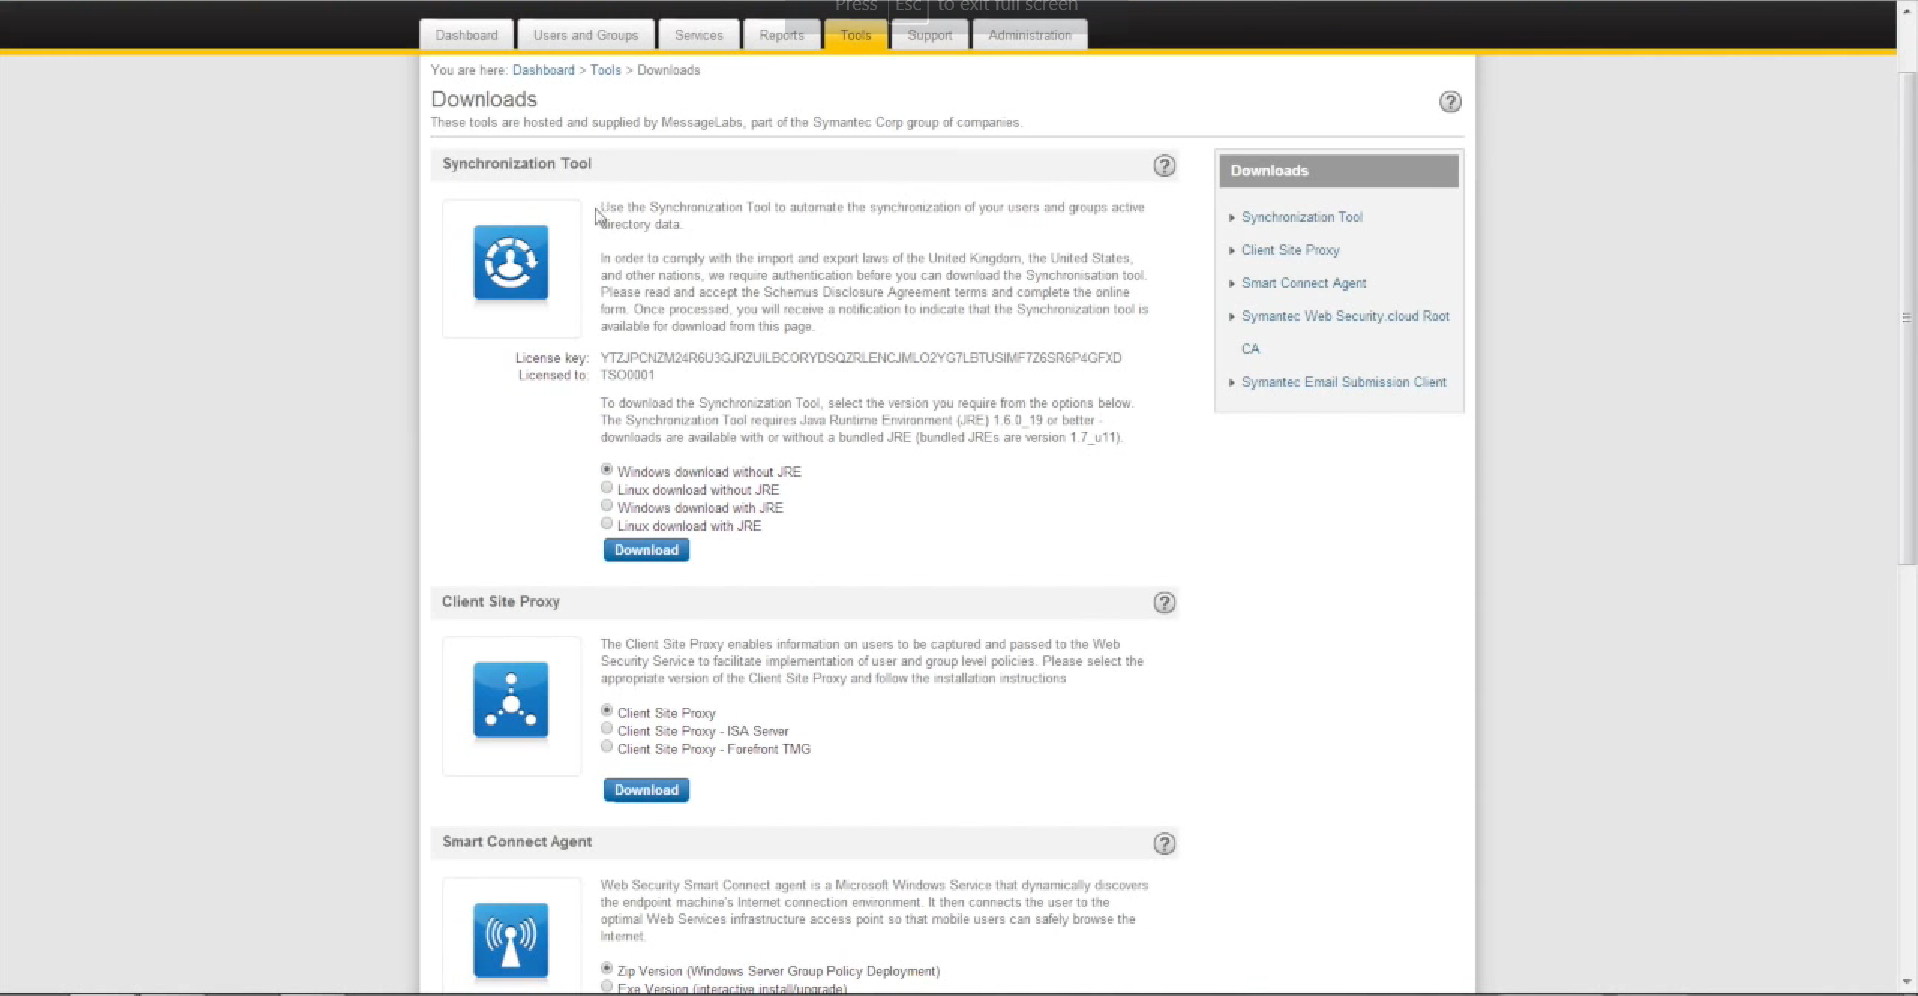 Symantec Cloud Download tools